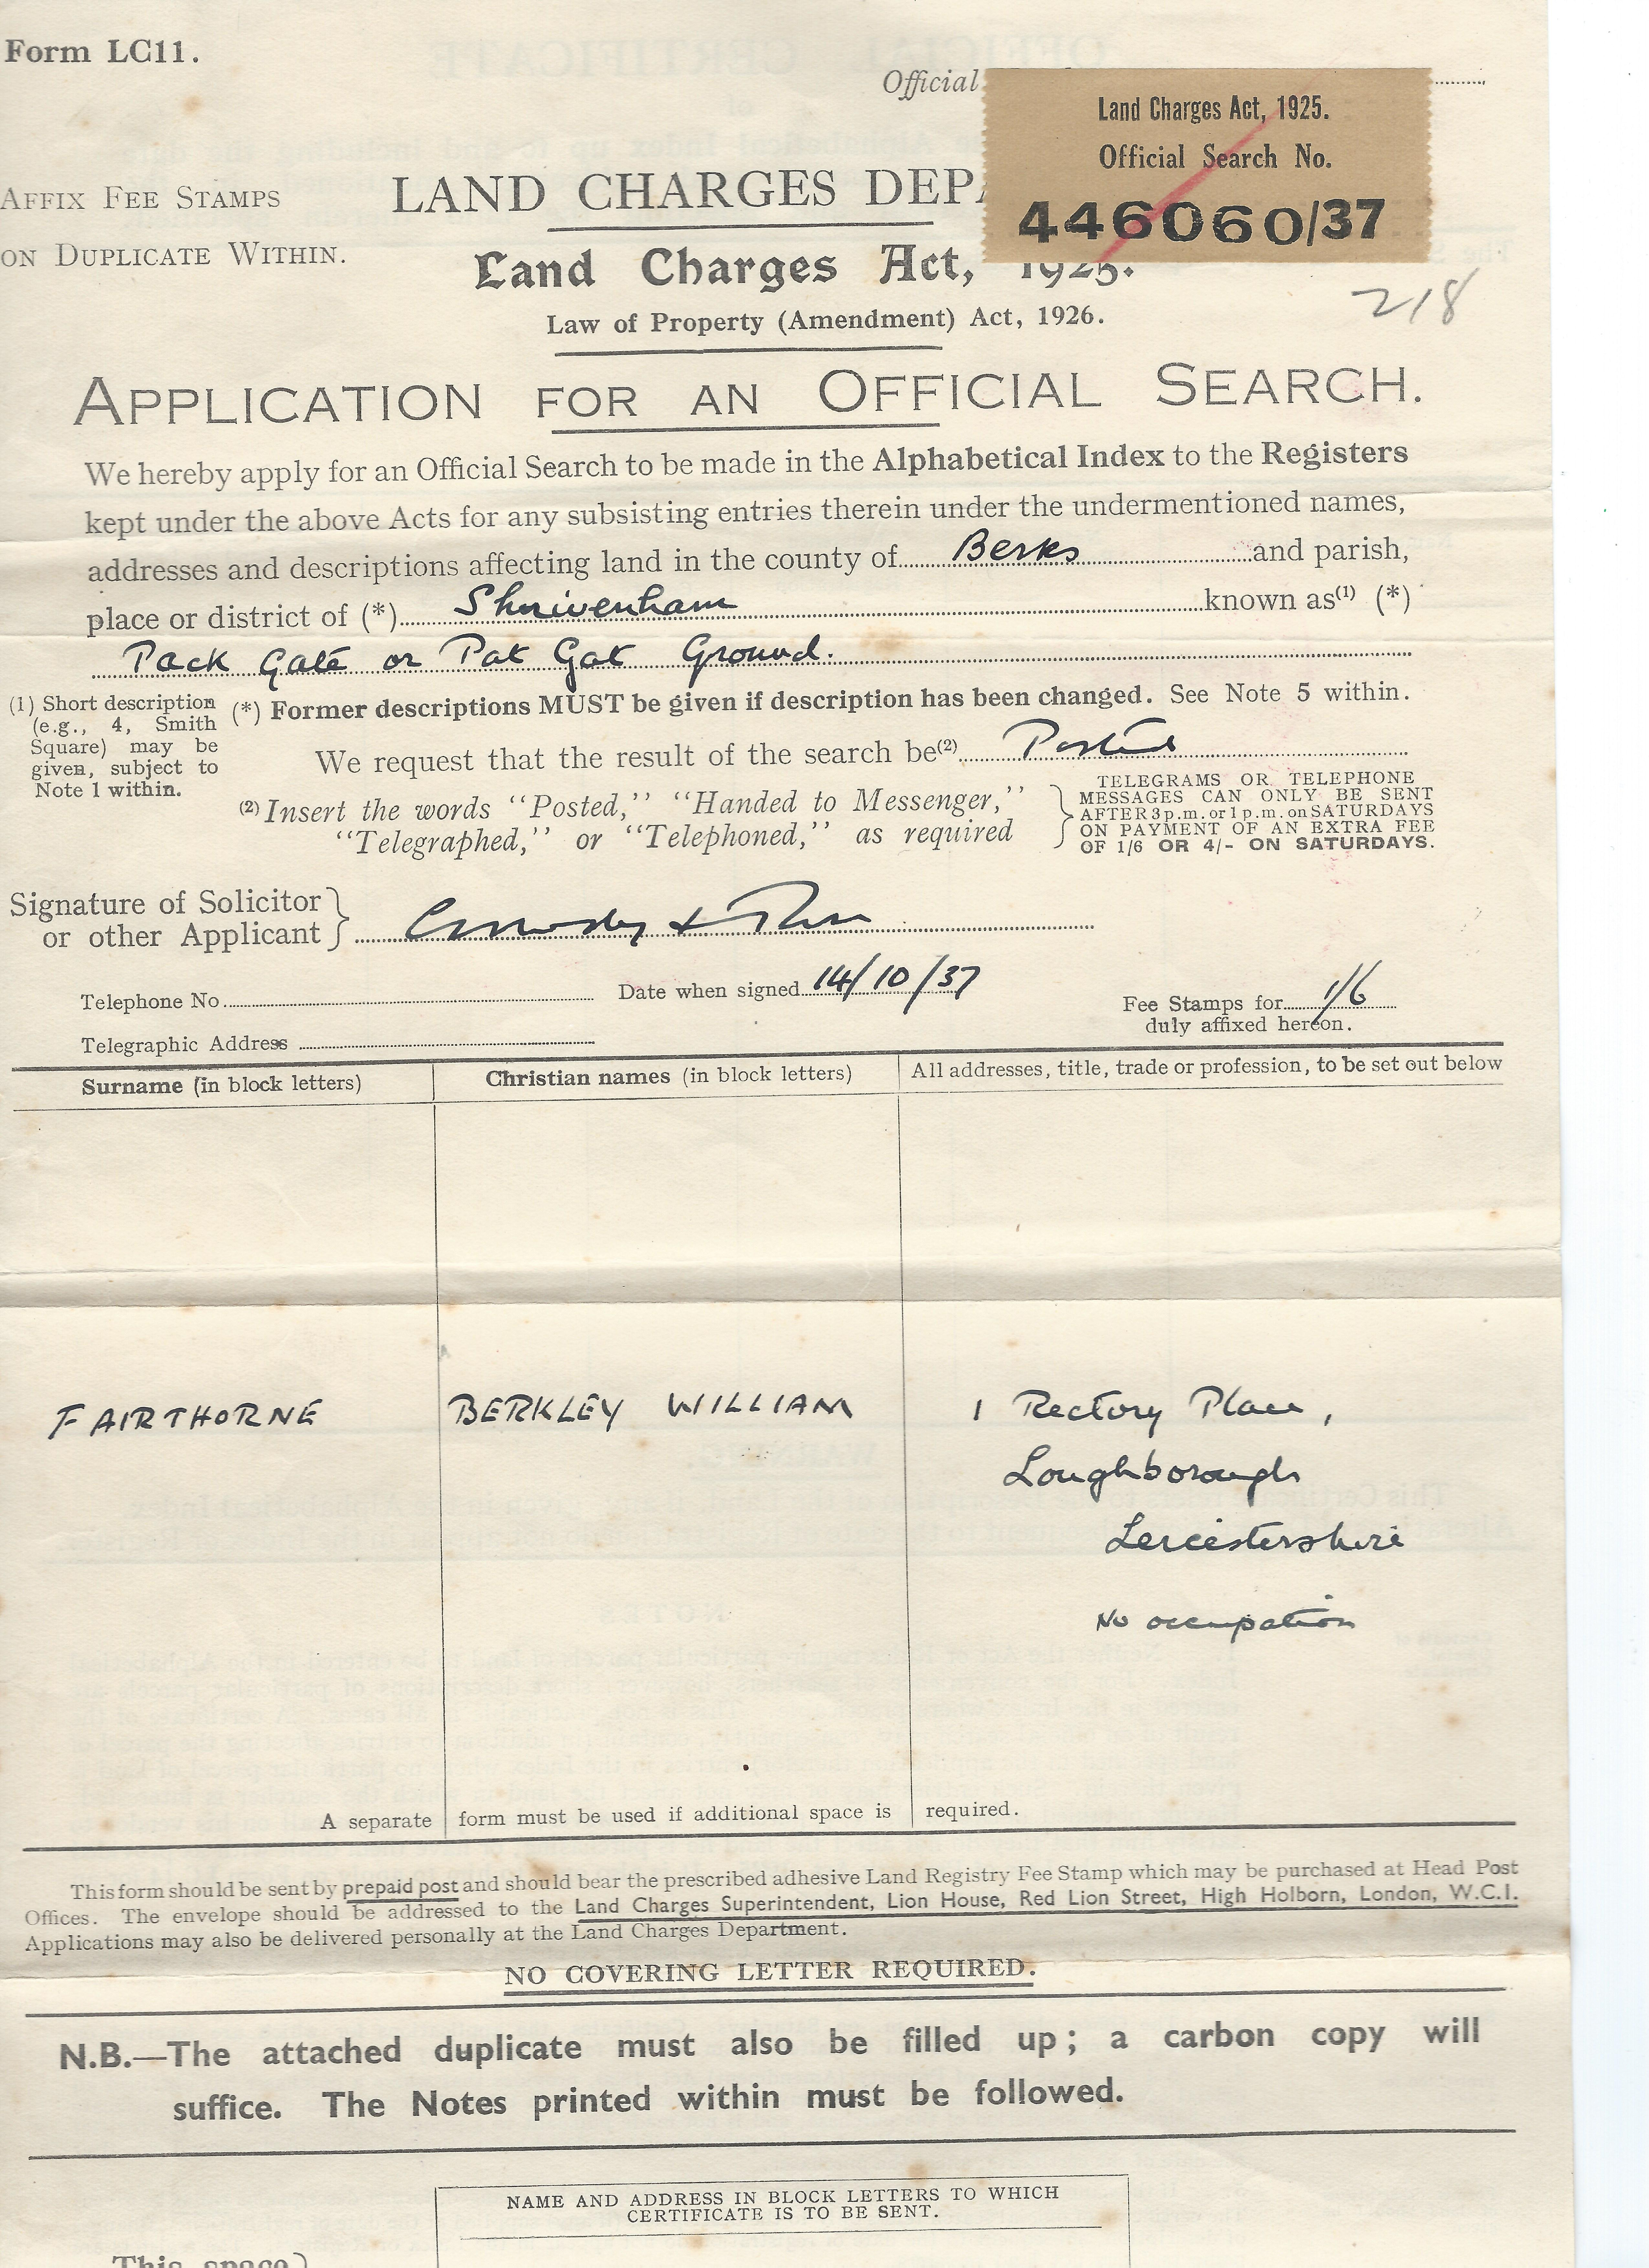 The original land serach request form